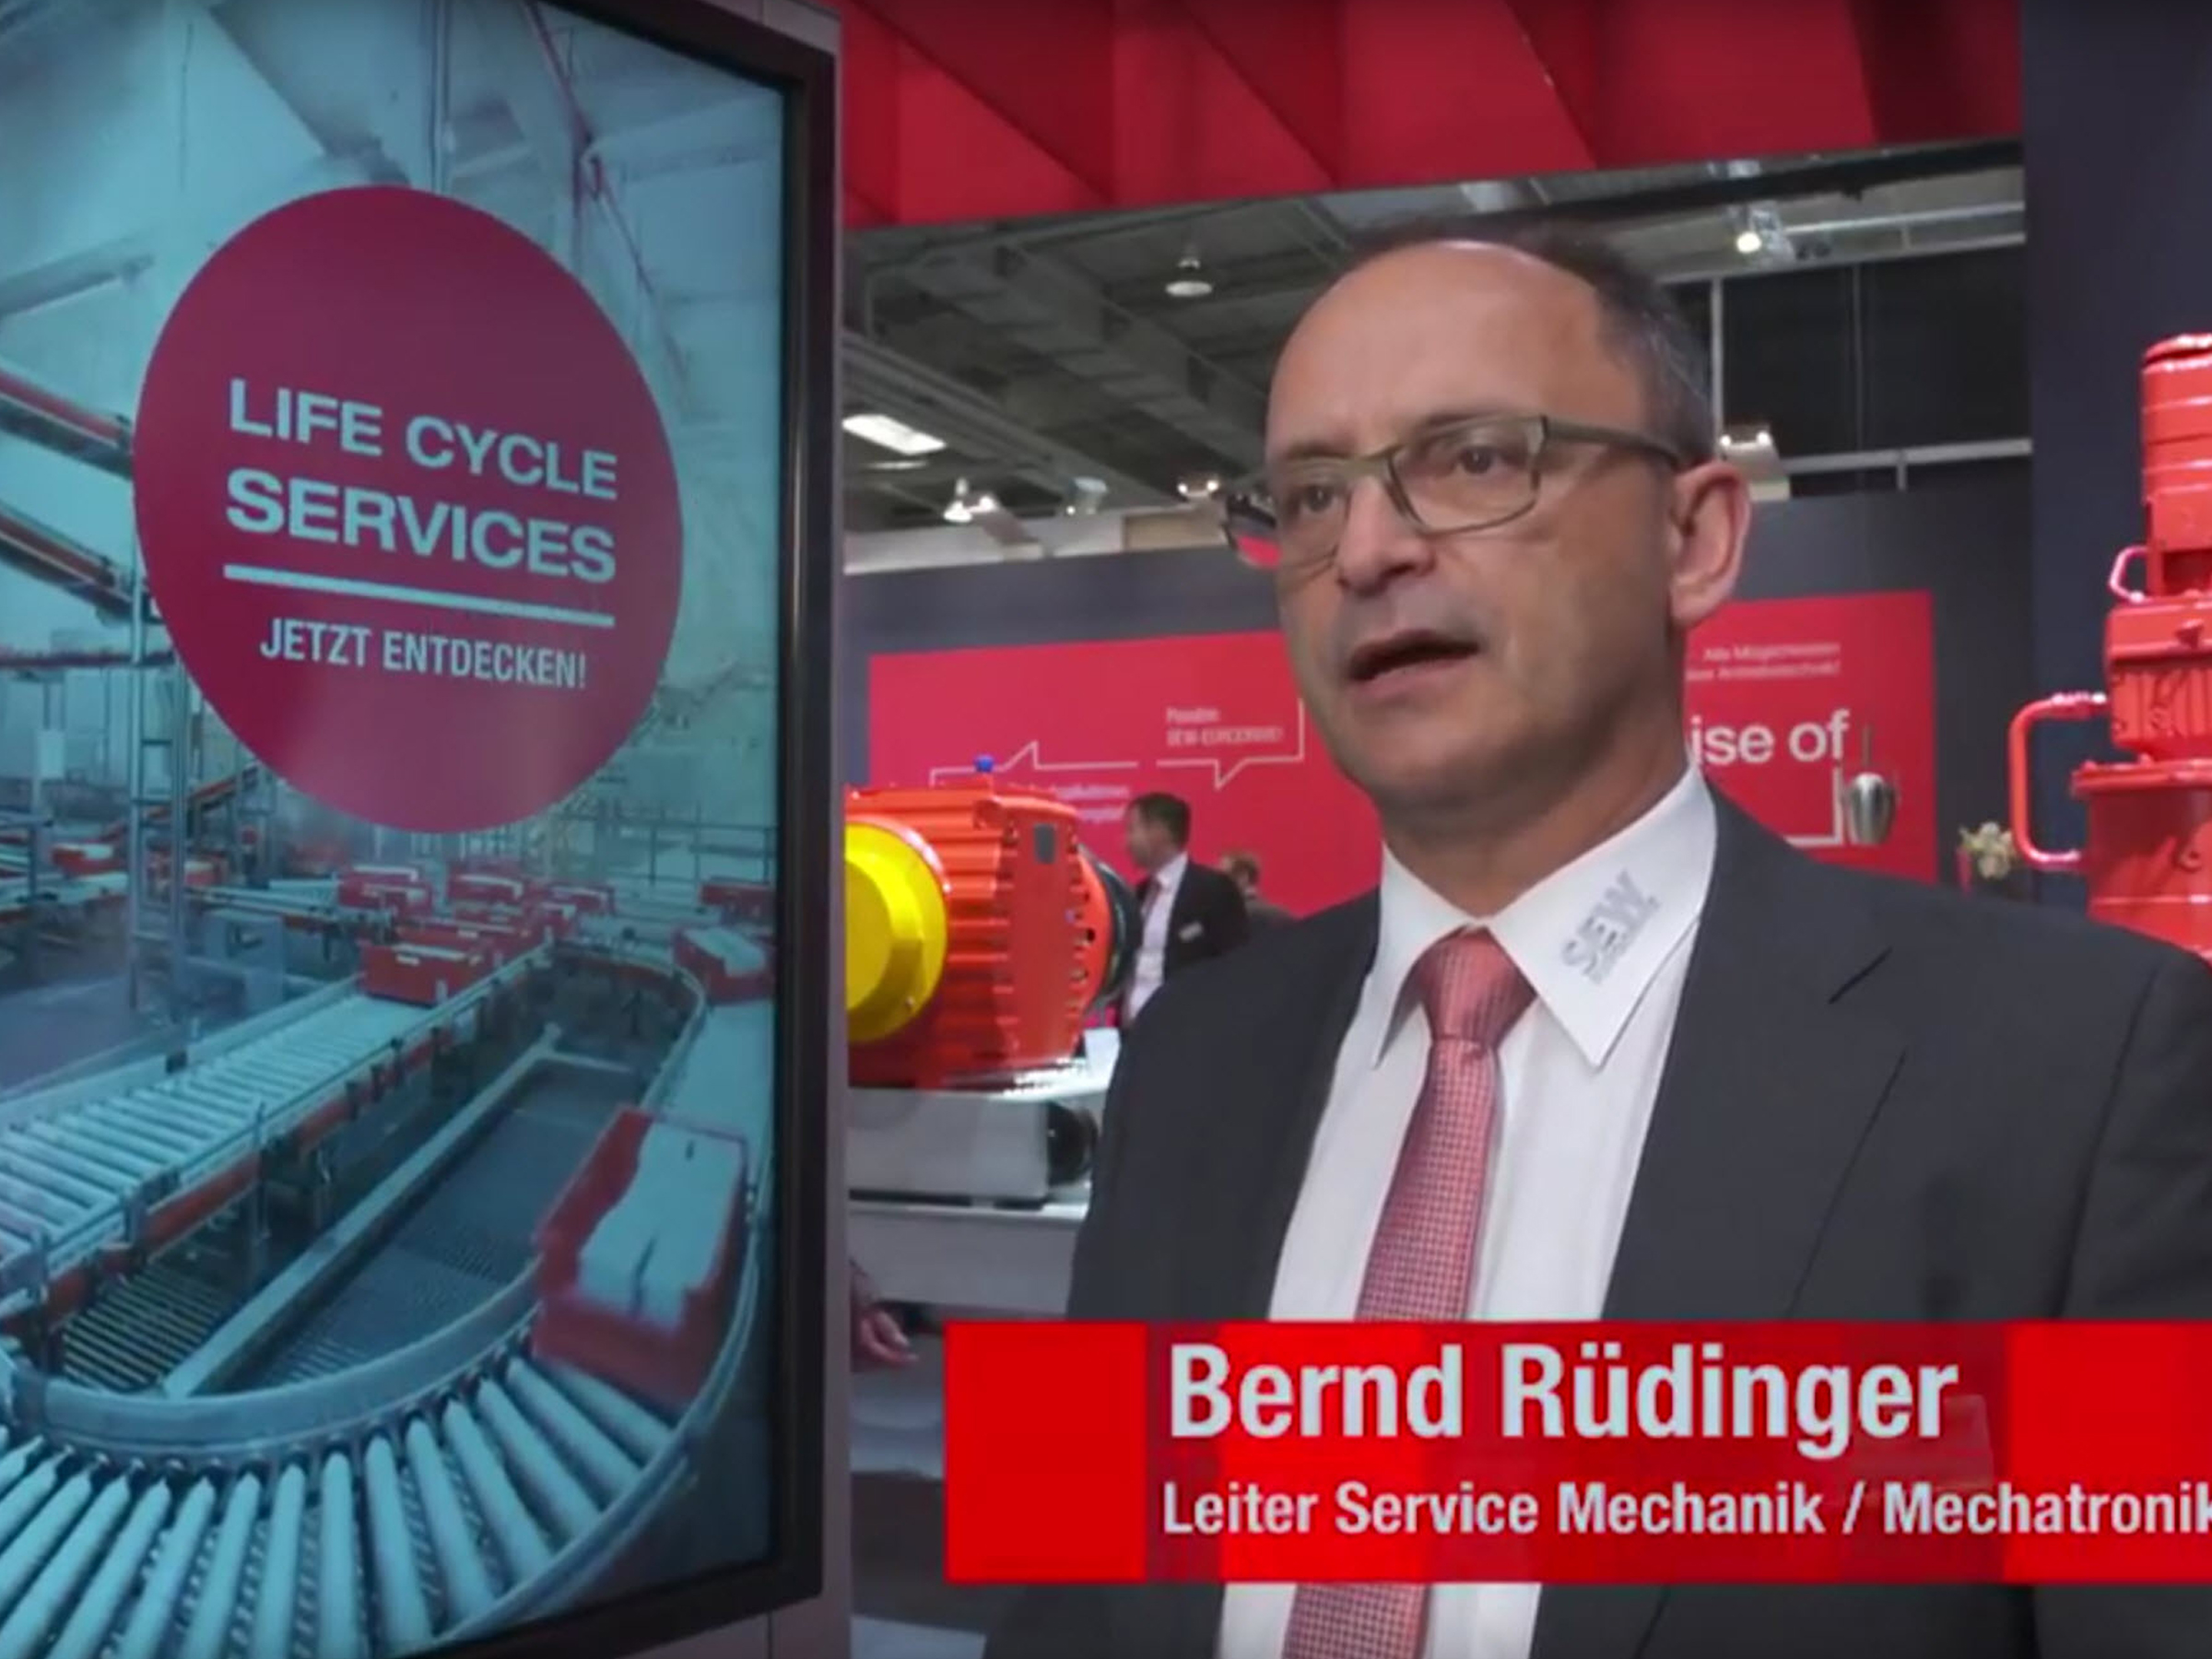 HANNOVER MESSE - Life Cycle Services